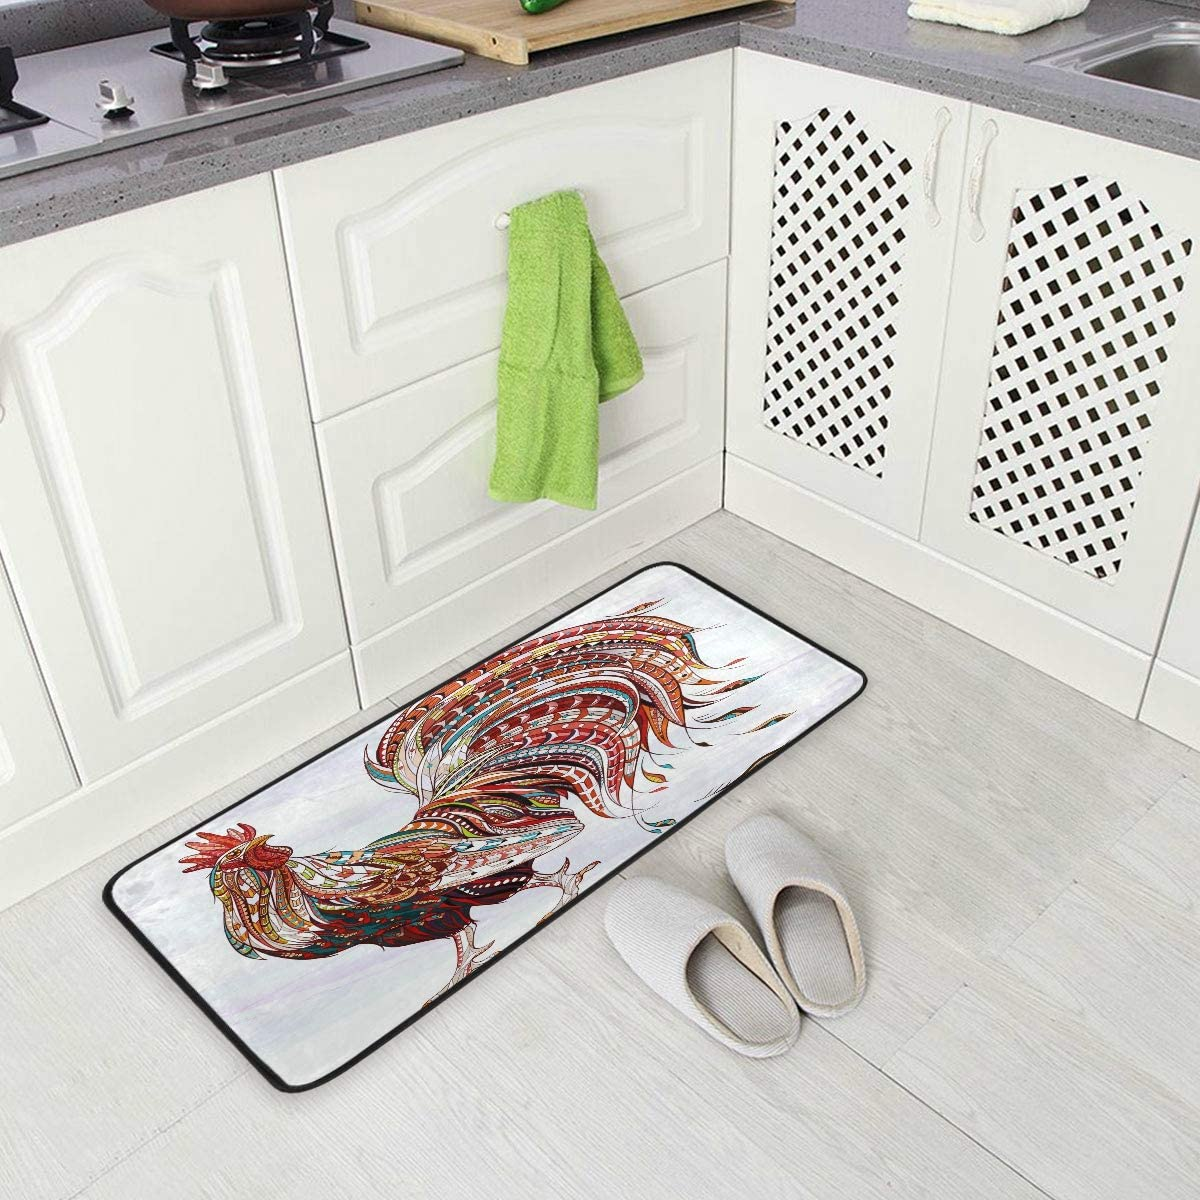 Boho Rooster Colorful Feather Kitchen Floor Mat, Non-Slip Comfort Office Standing Cushioned Rug Home Decor Indoor Outdoor, 39